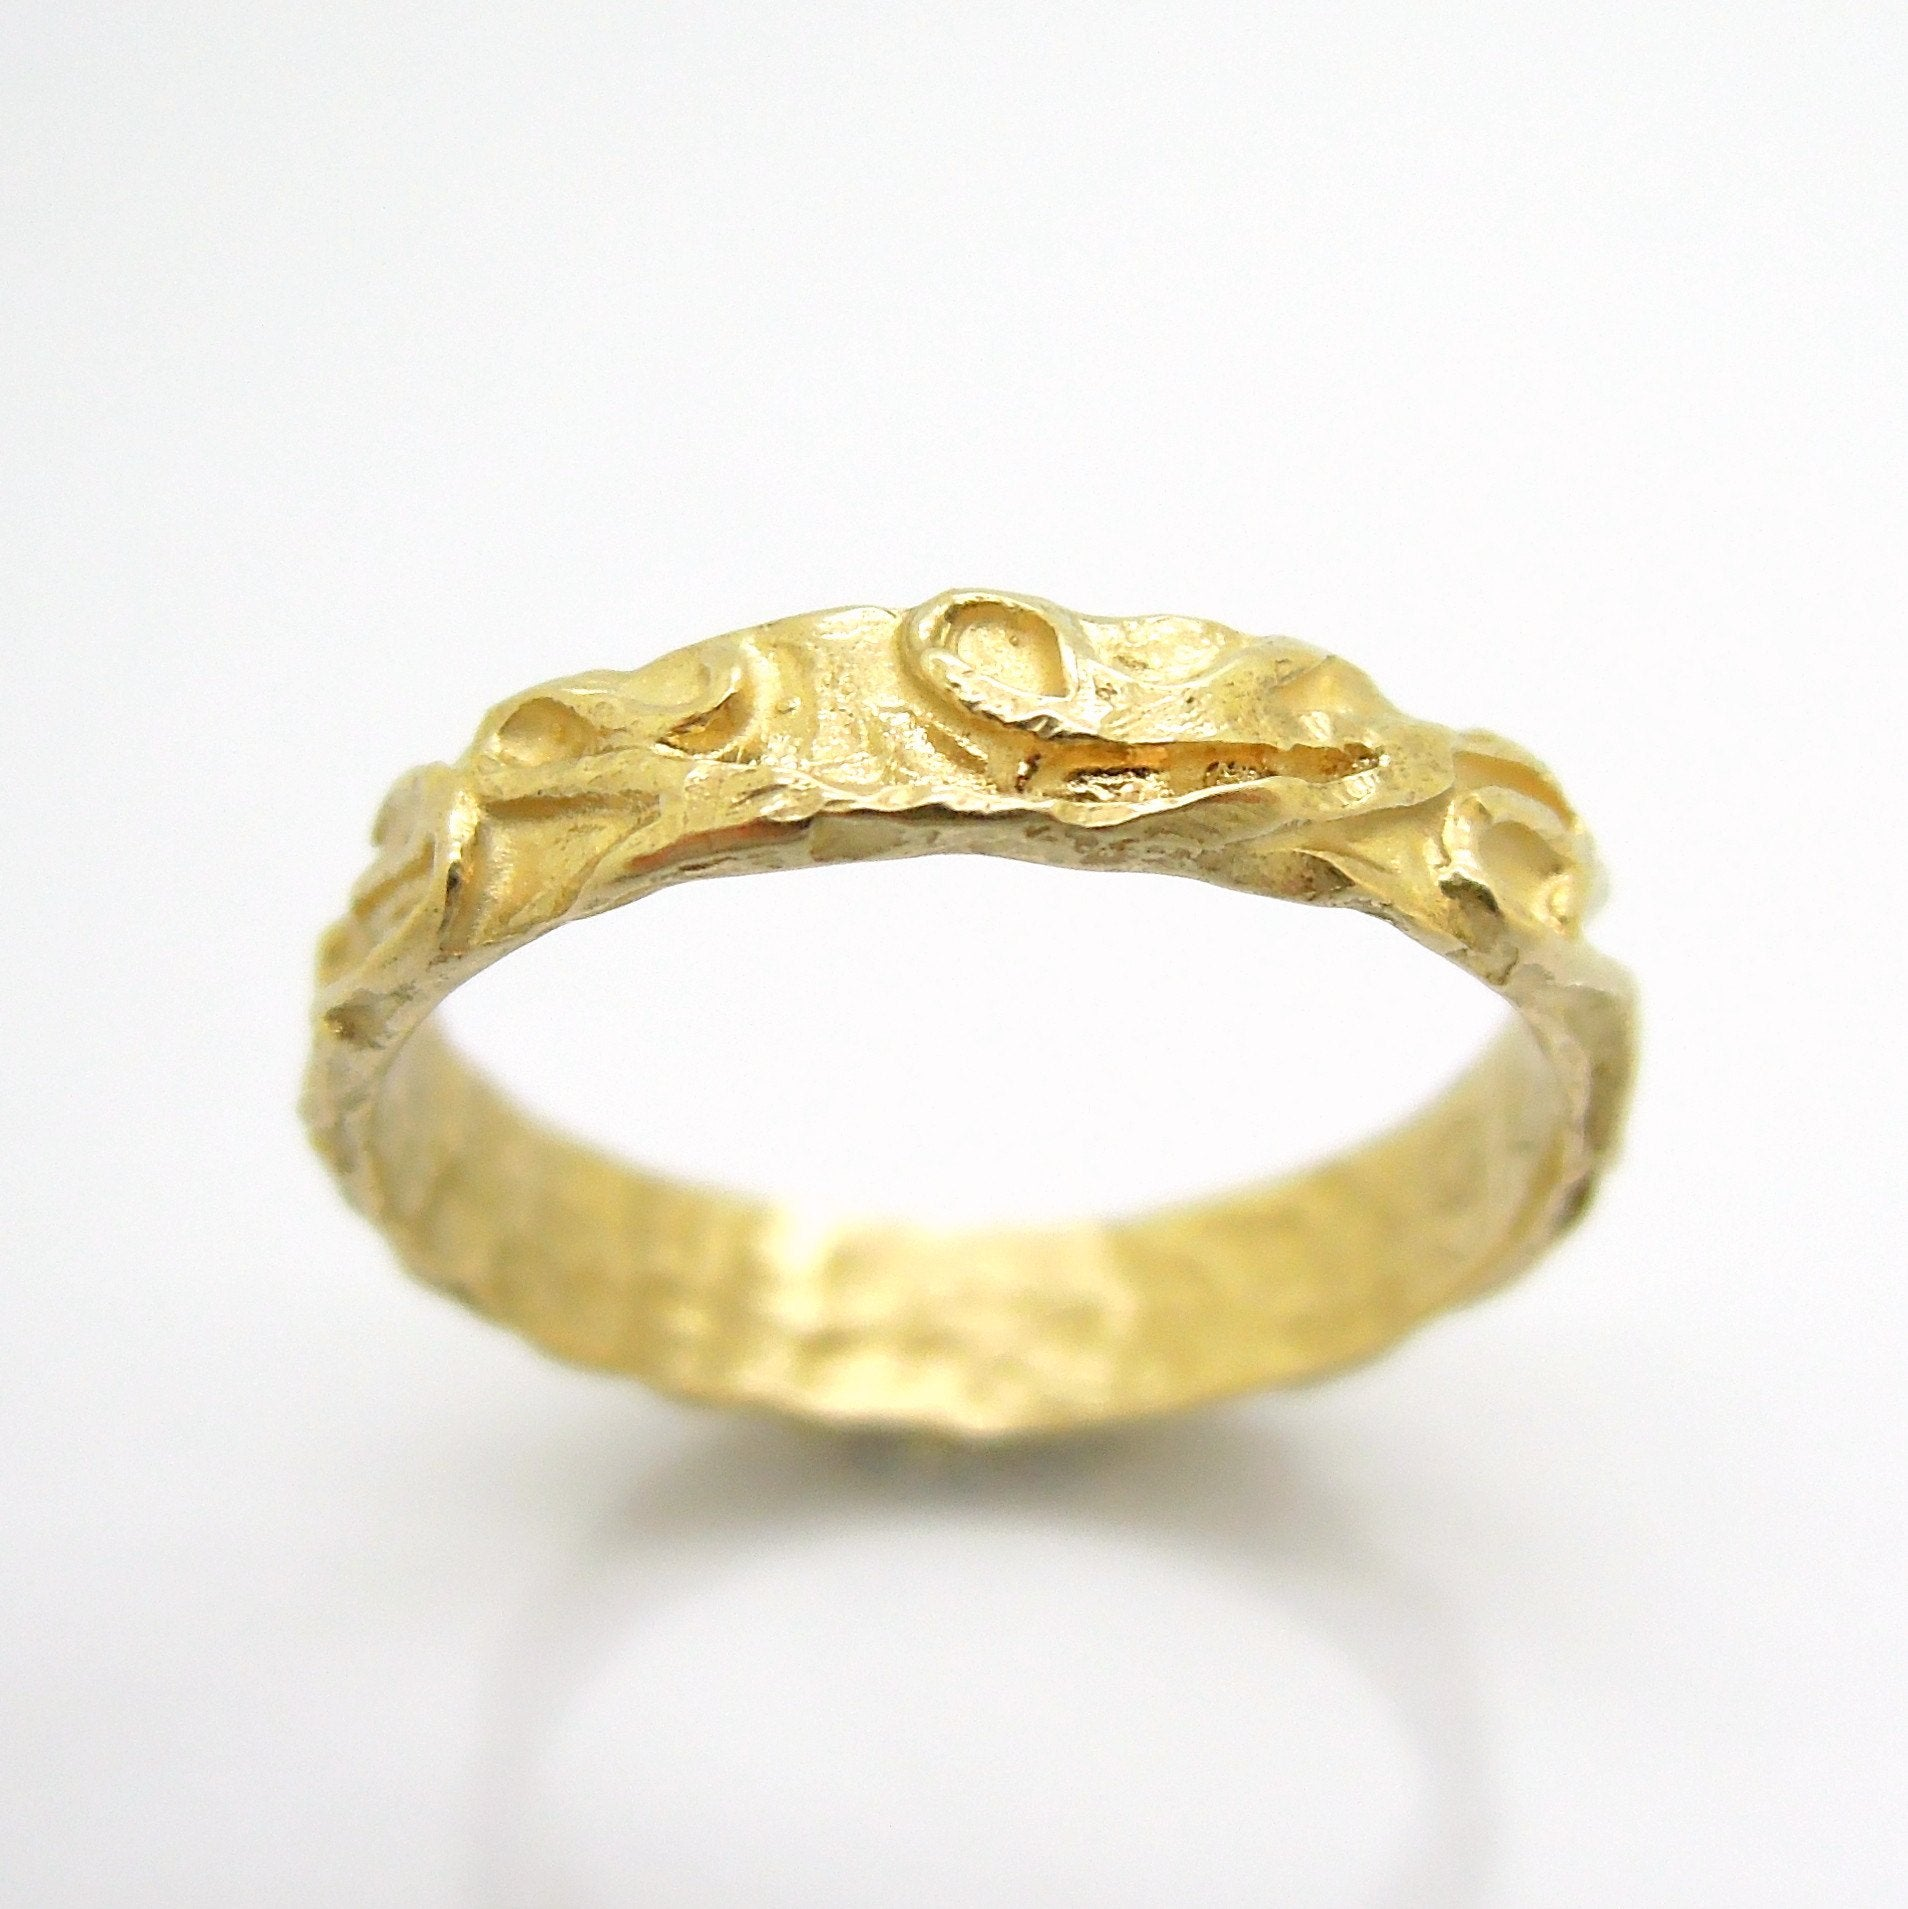 ring wedding band stacking ring landscape line design yellow gold ring